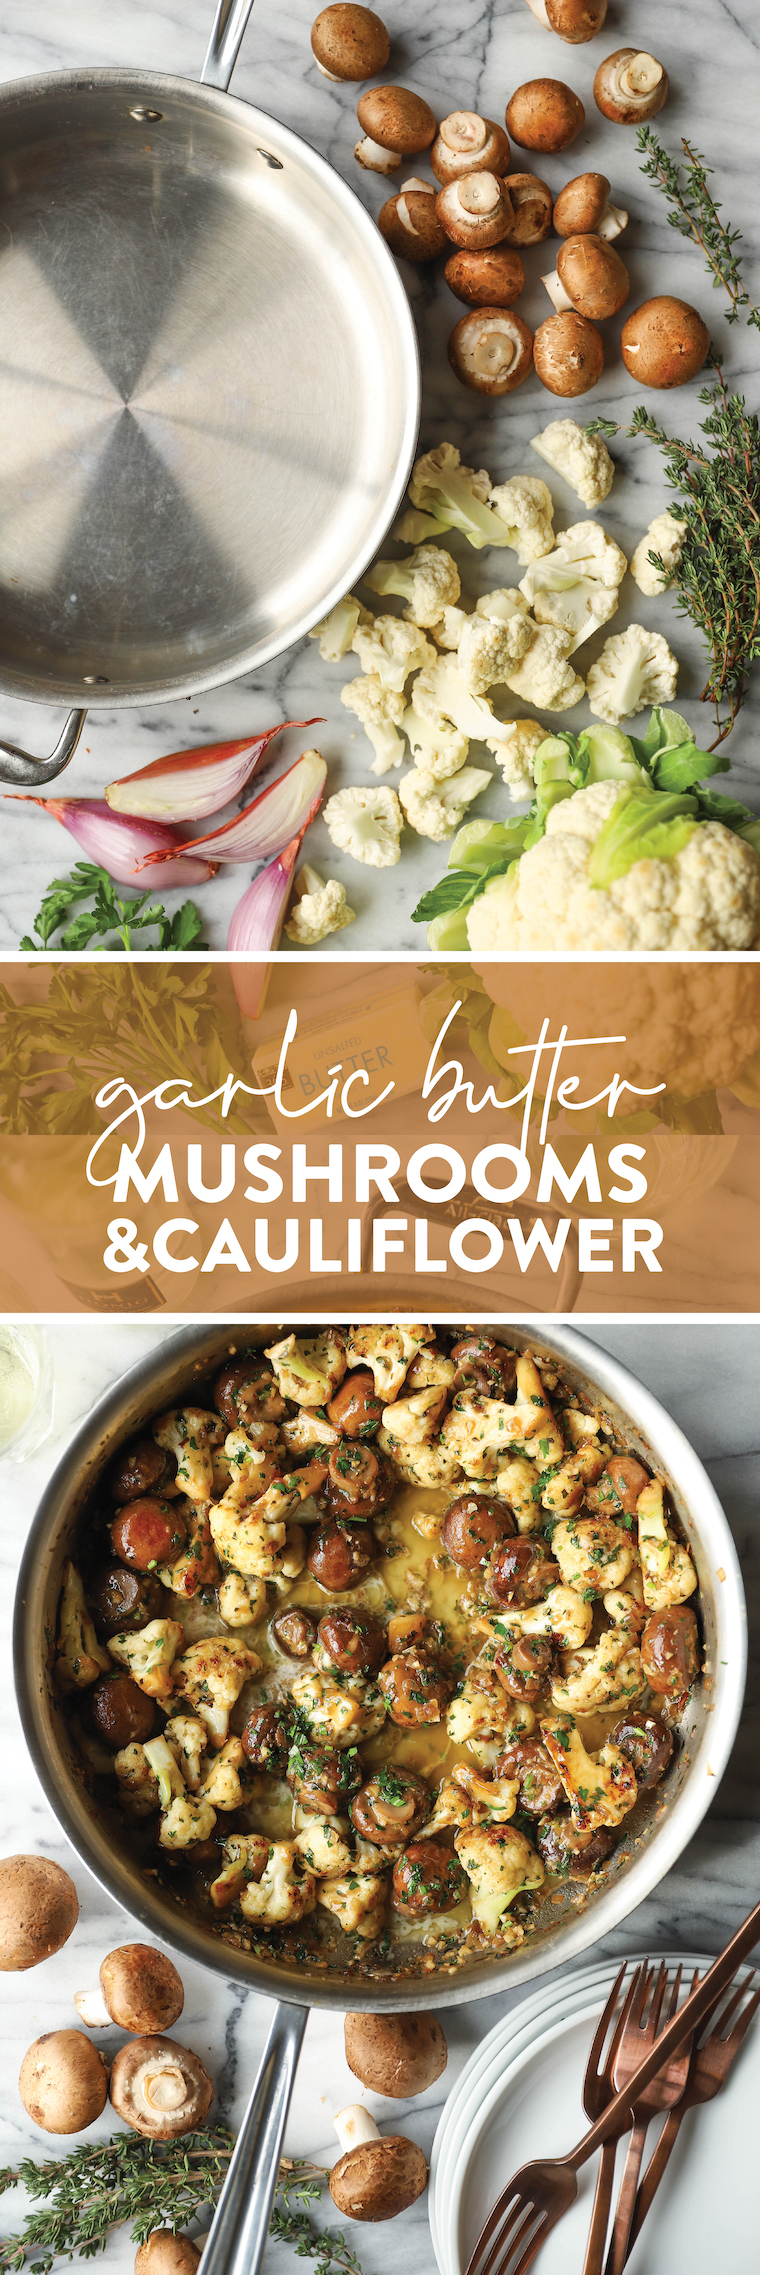 Garlic Butter Mushrooms and Cauliflower - The perfect side dish! Chockfull of veggies, easy to make + loaded with garlicky-buttery goodness!